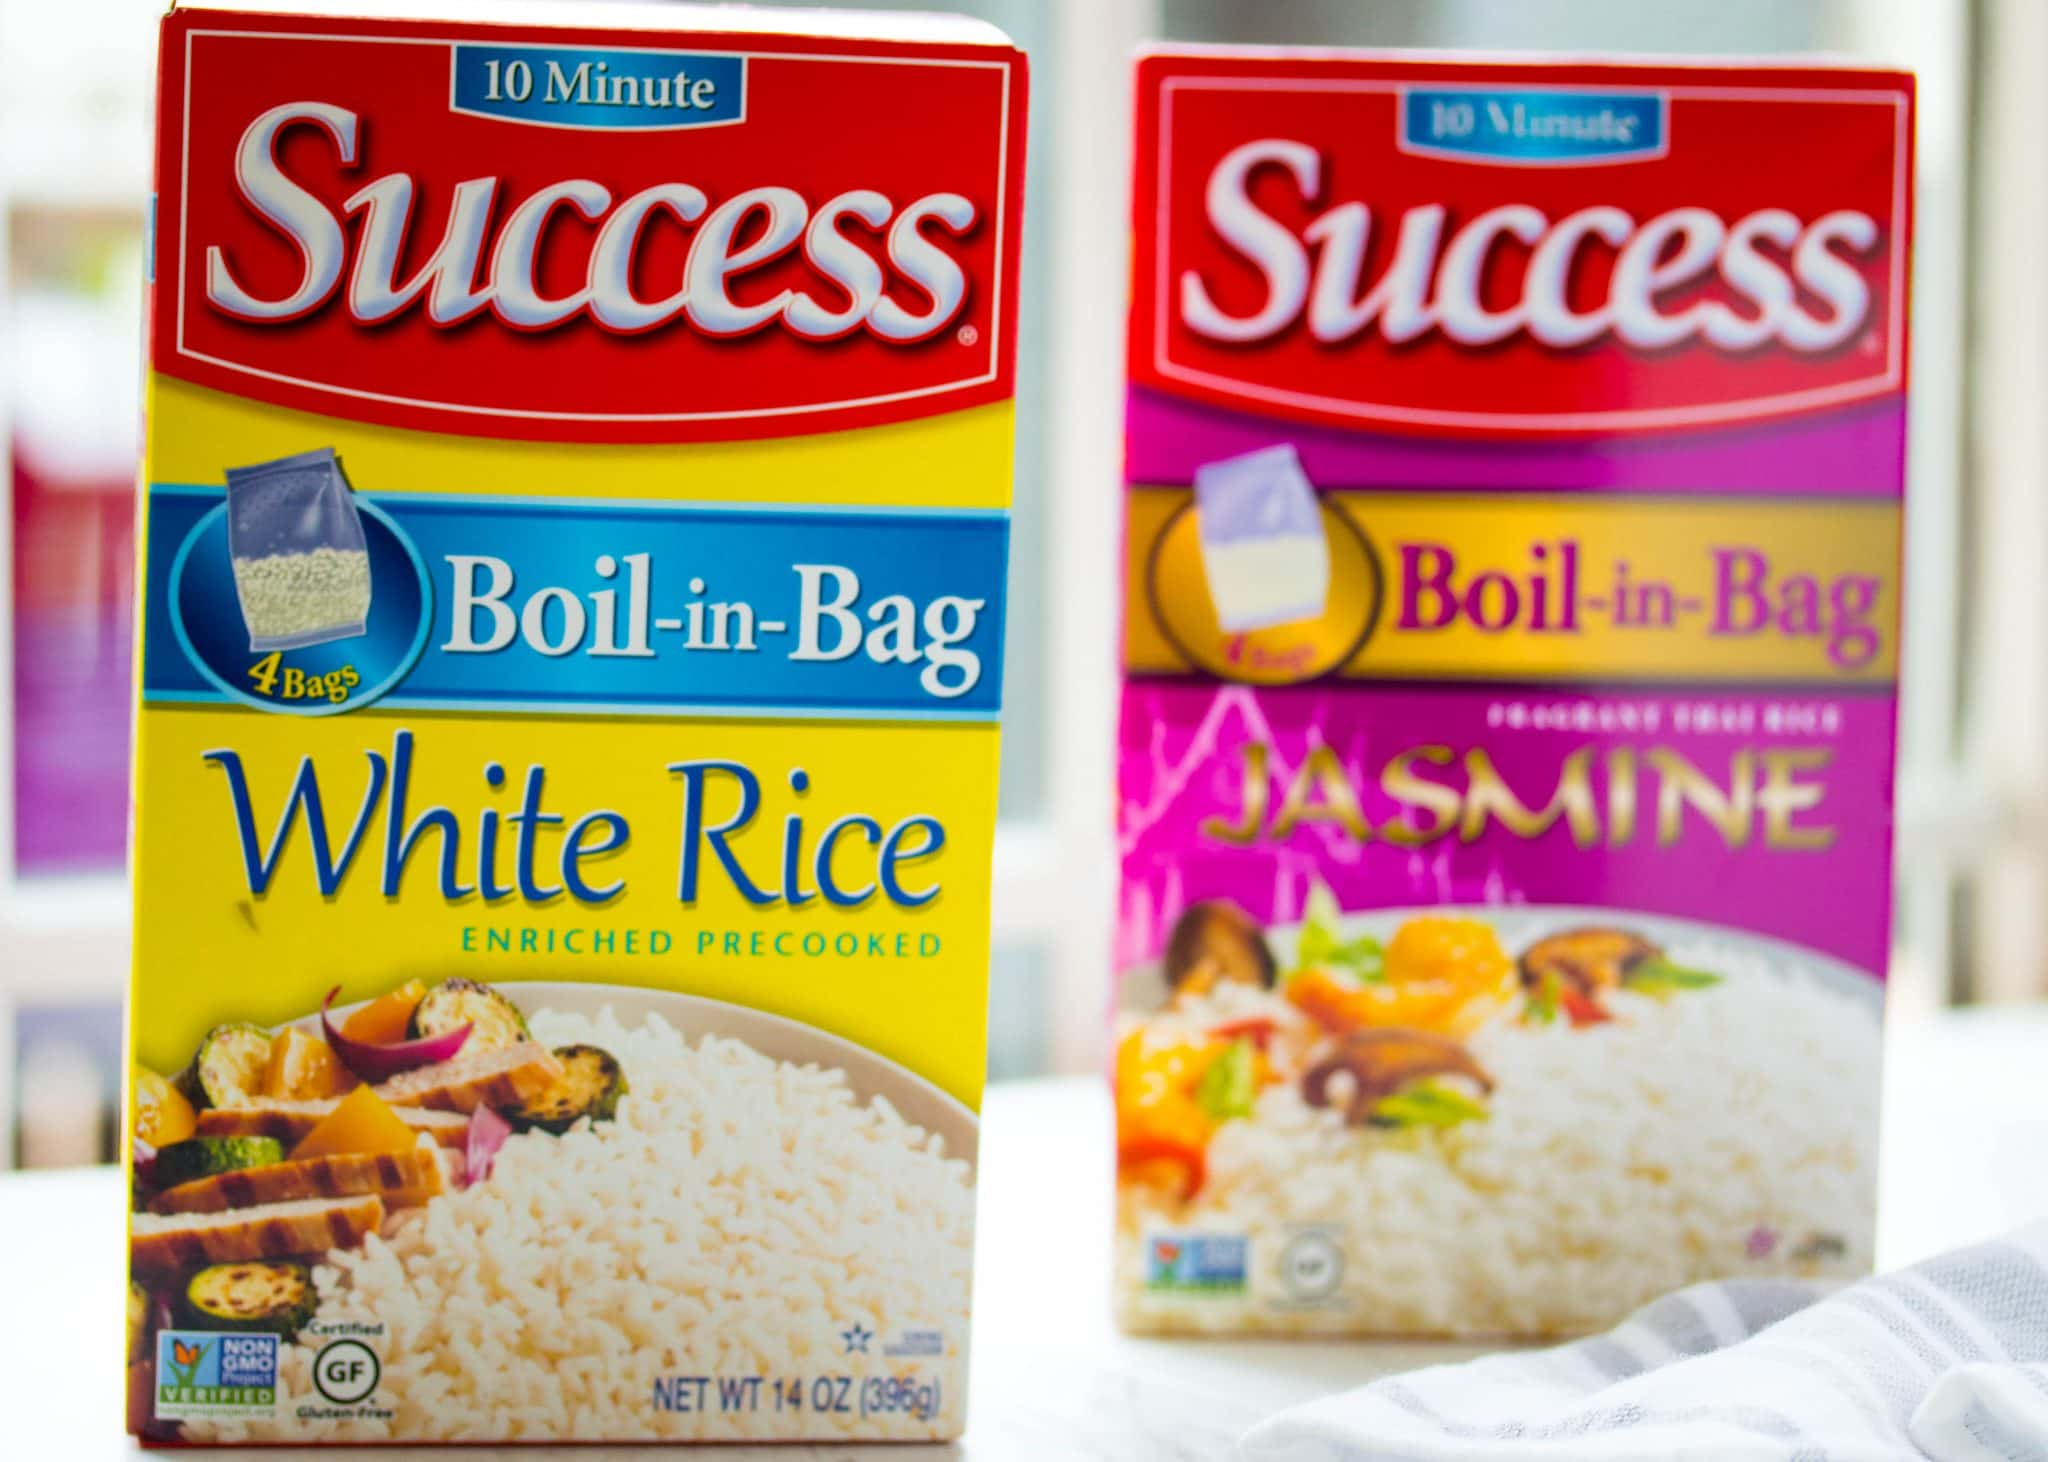 Check out the Ibotta offer to save on Success® Boil-in-Bag Rice at Walmart! This offer is valid until 8/4/2019. The convenient BPA-free boil-in-bag is ready in just 10 minutes, with amazing rice or quinoa guaranteed every time. You won't have to sacrifice on quality ever again. Cooking rice has never been easier. Just boil the pre-measured bag, drain and cut open. It makes cooking dinner so much easier because there's no measuring. No measure. No mess! With all of the cooking you have to do for your family, you want things to be as easy as possible.